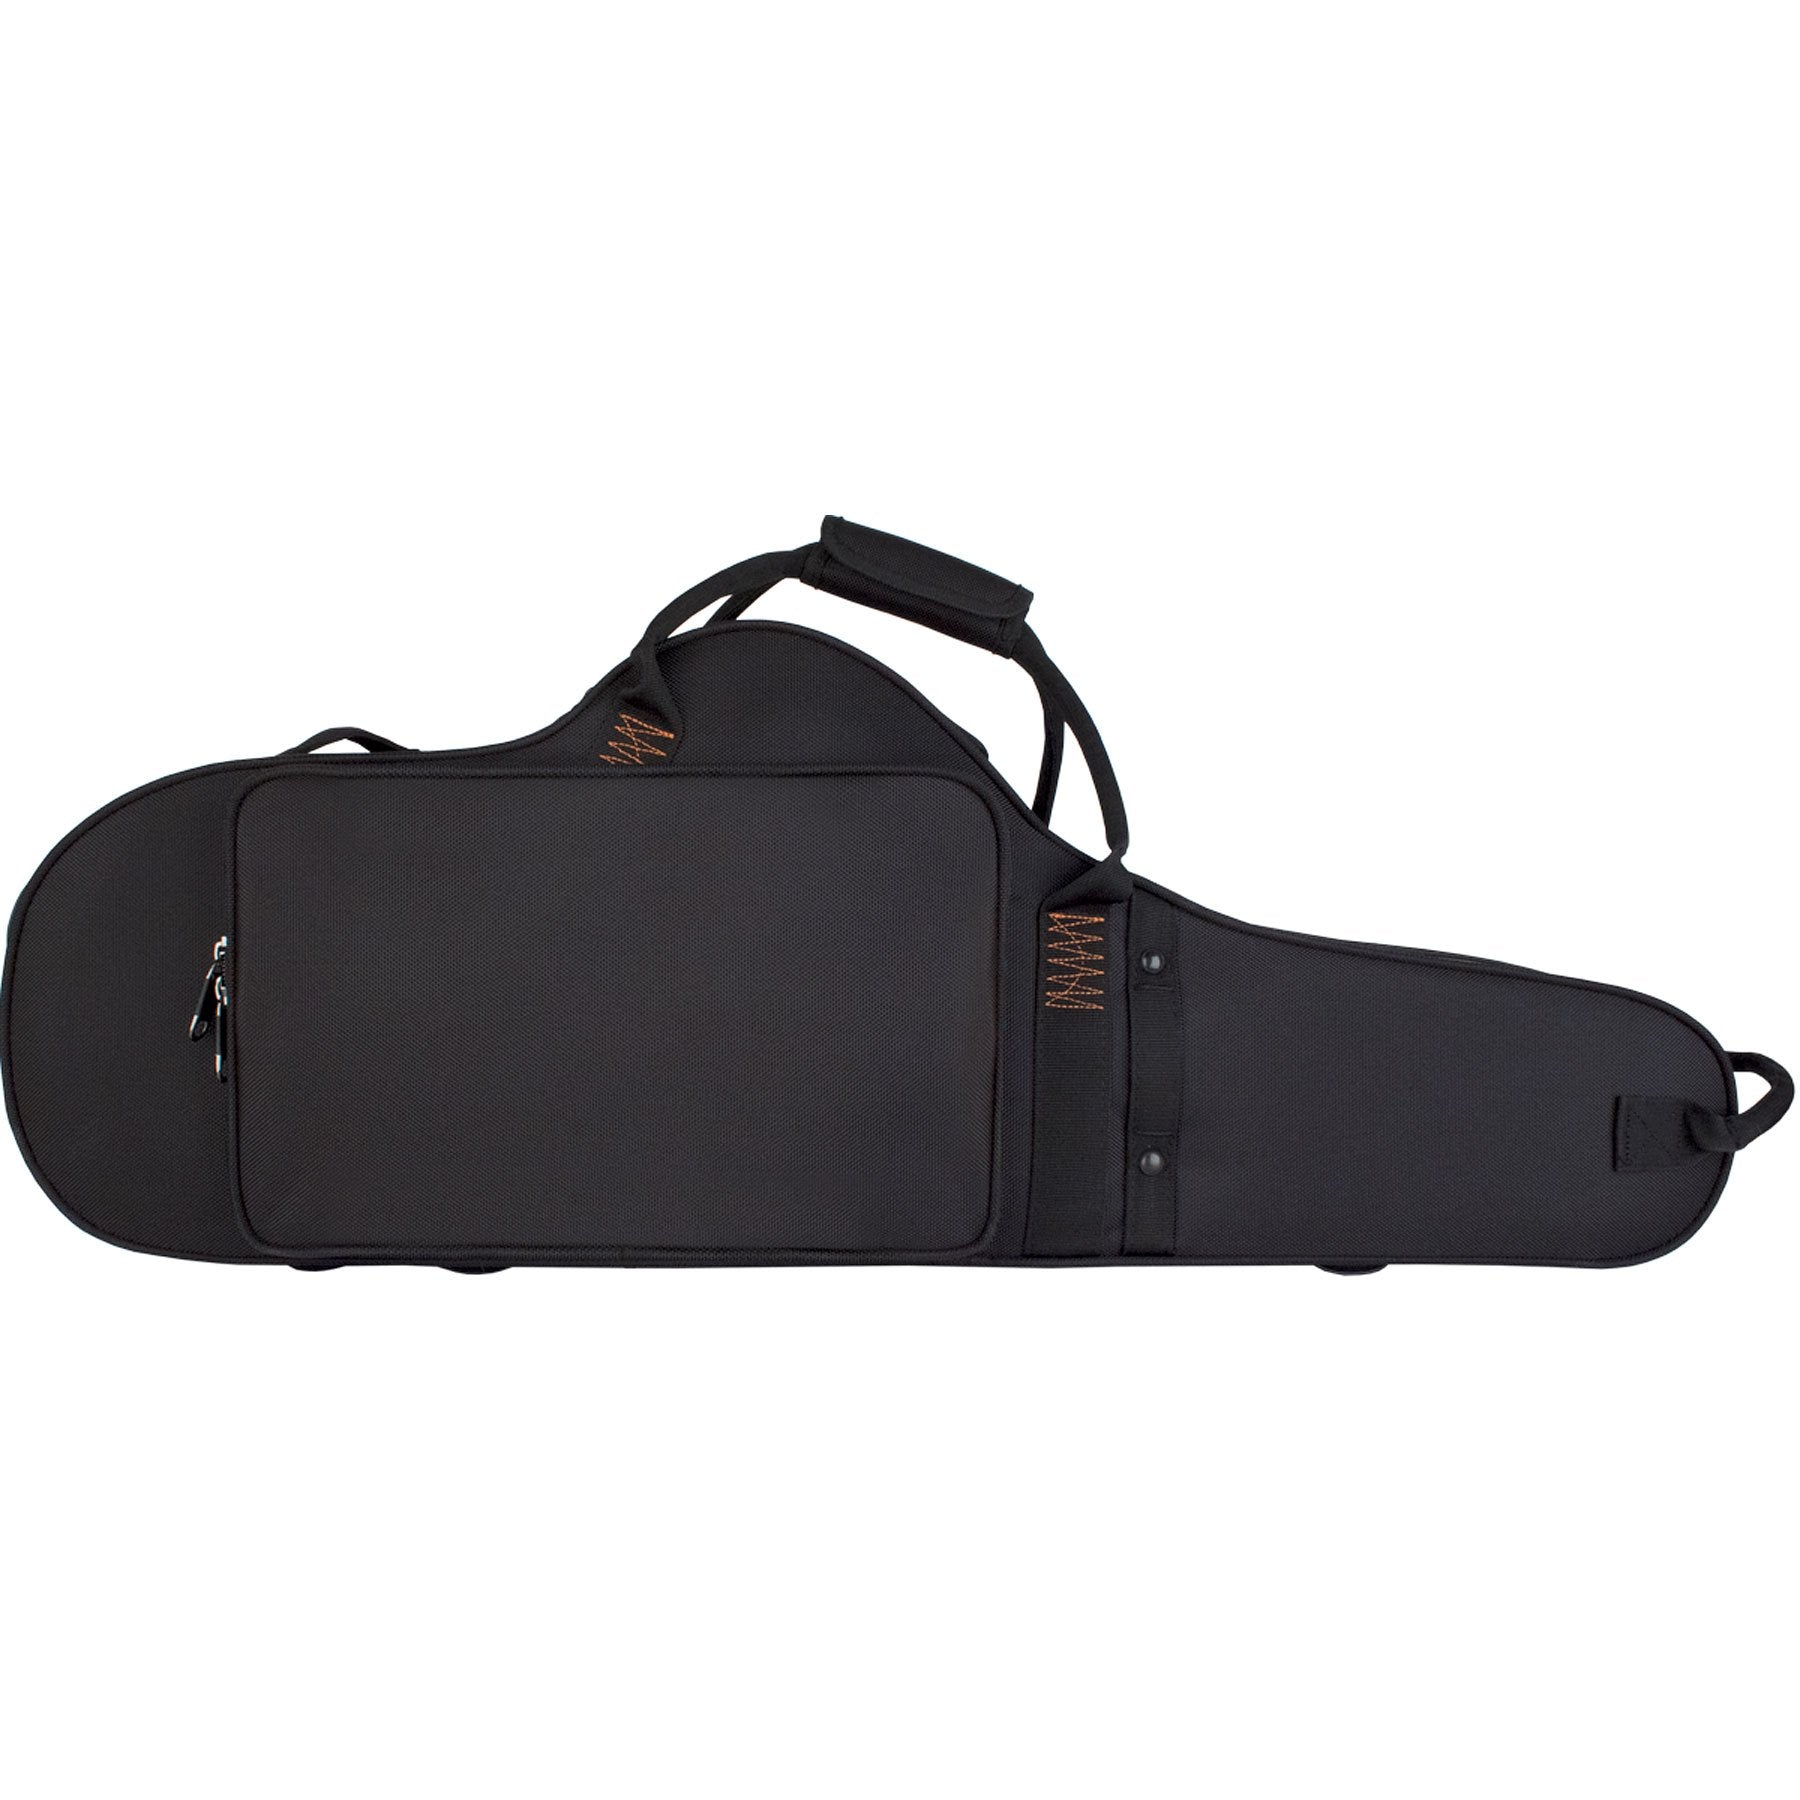 Protec - Tenor Saxophone PRO PAC Case (Contoured)-Accessories-Protec-Music Elements